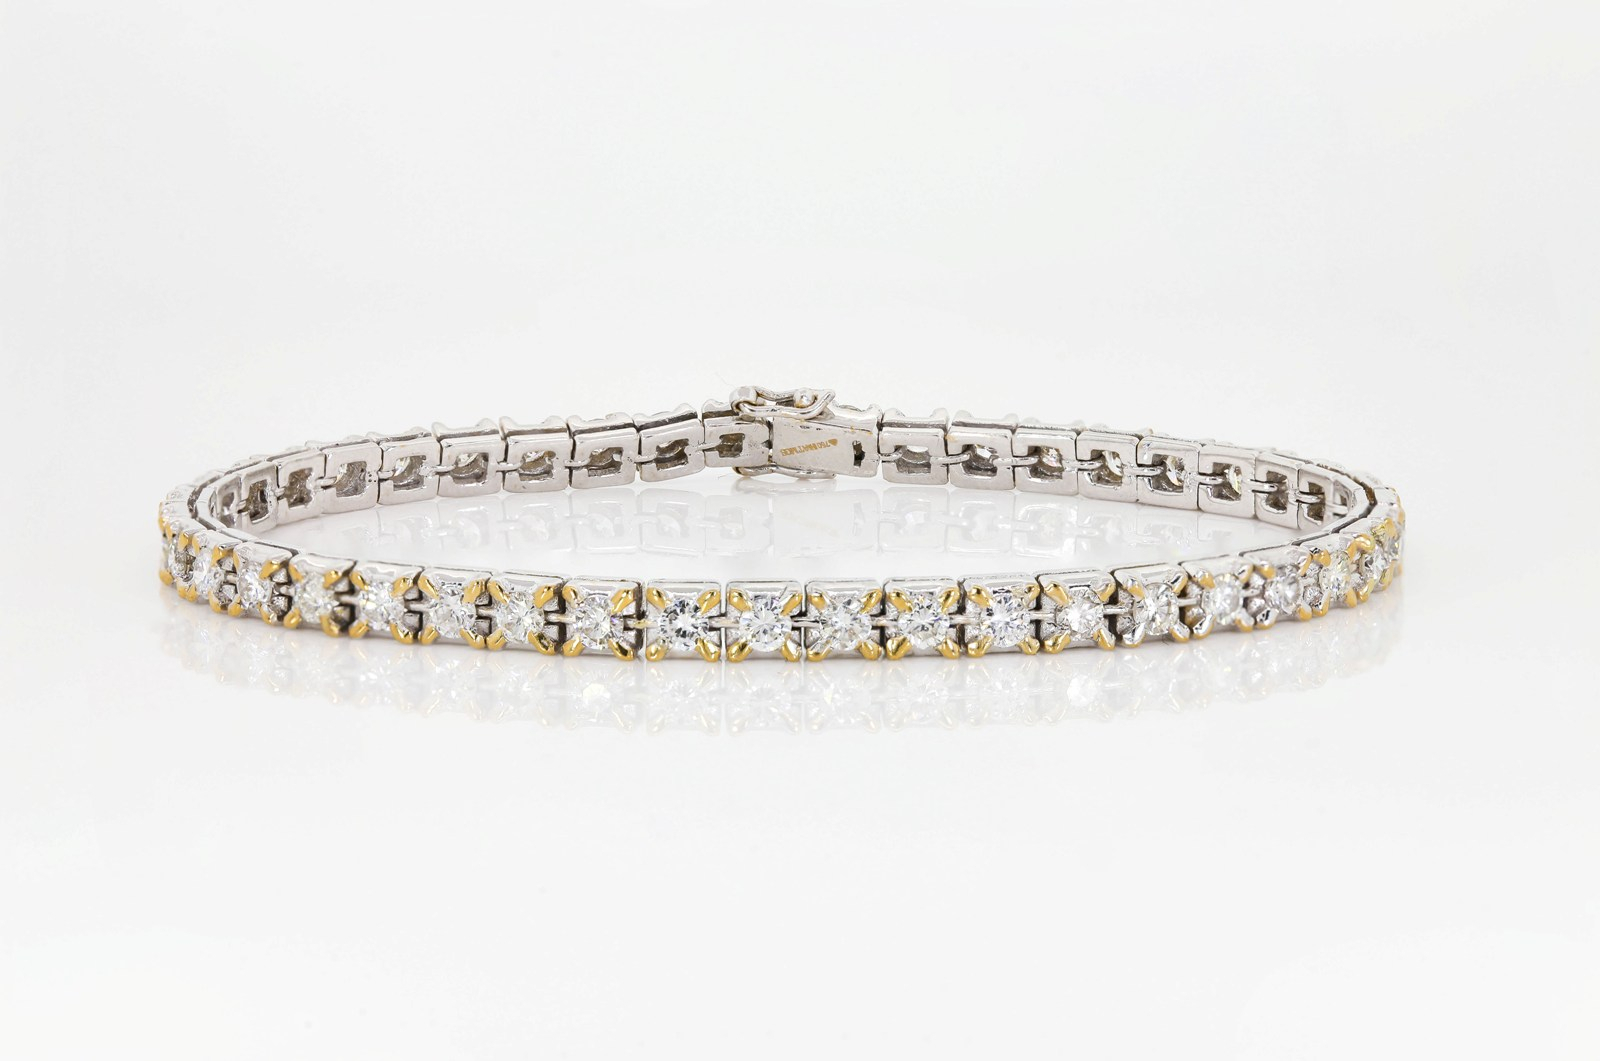 Diamond & Gold Straight Line Bracelet For Most Current Round Brilliant Diamond Straightline Necklaces (View 11 of 25)